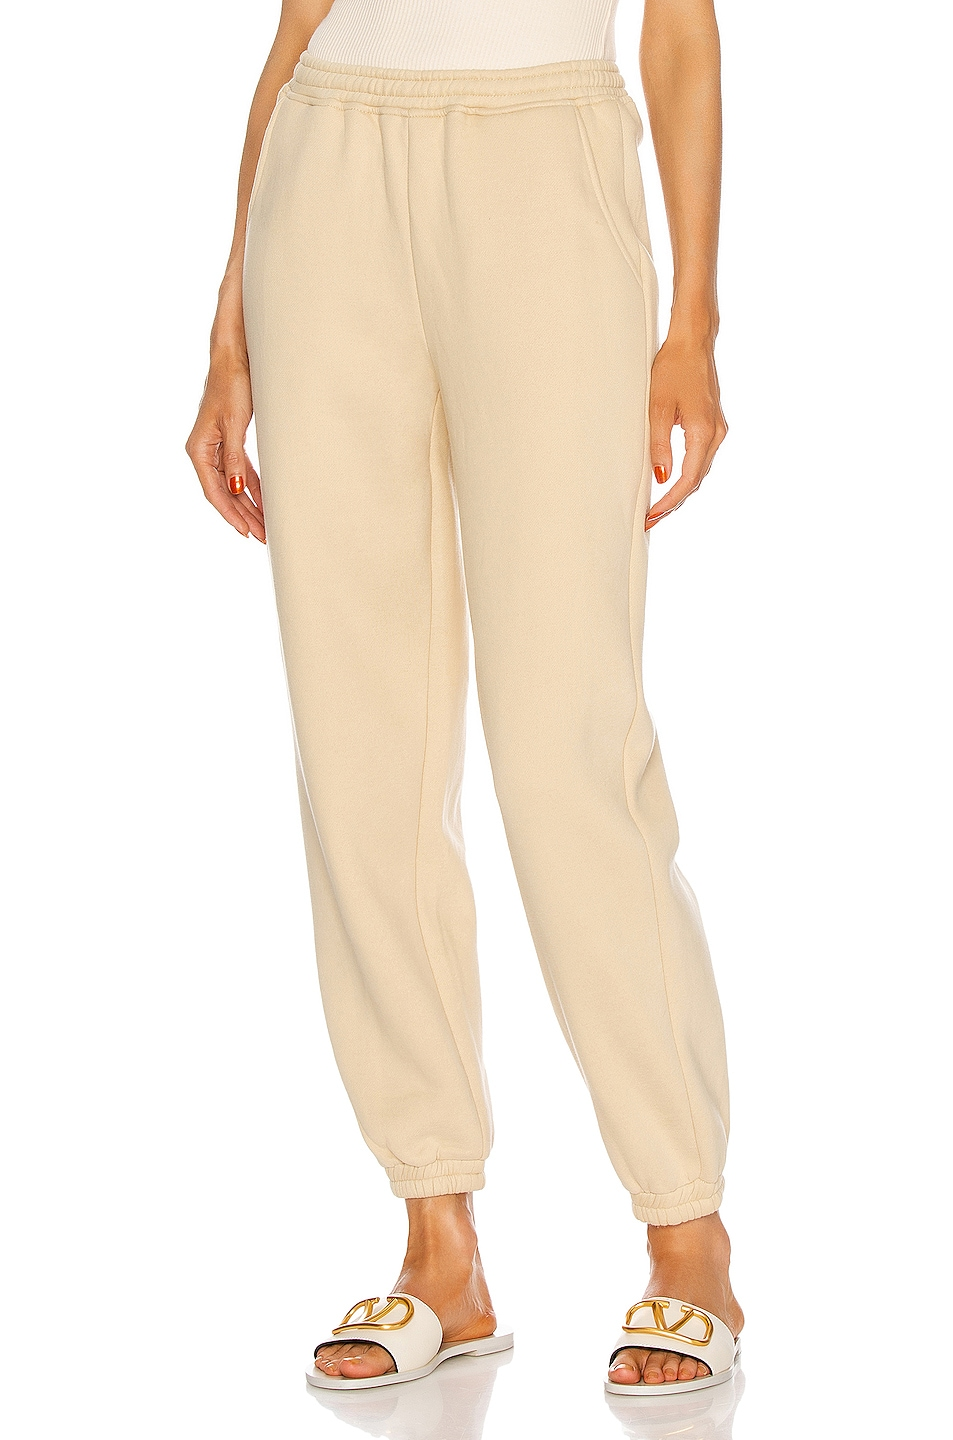 Image 1 of Atoir Track Pant in Oatmeal